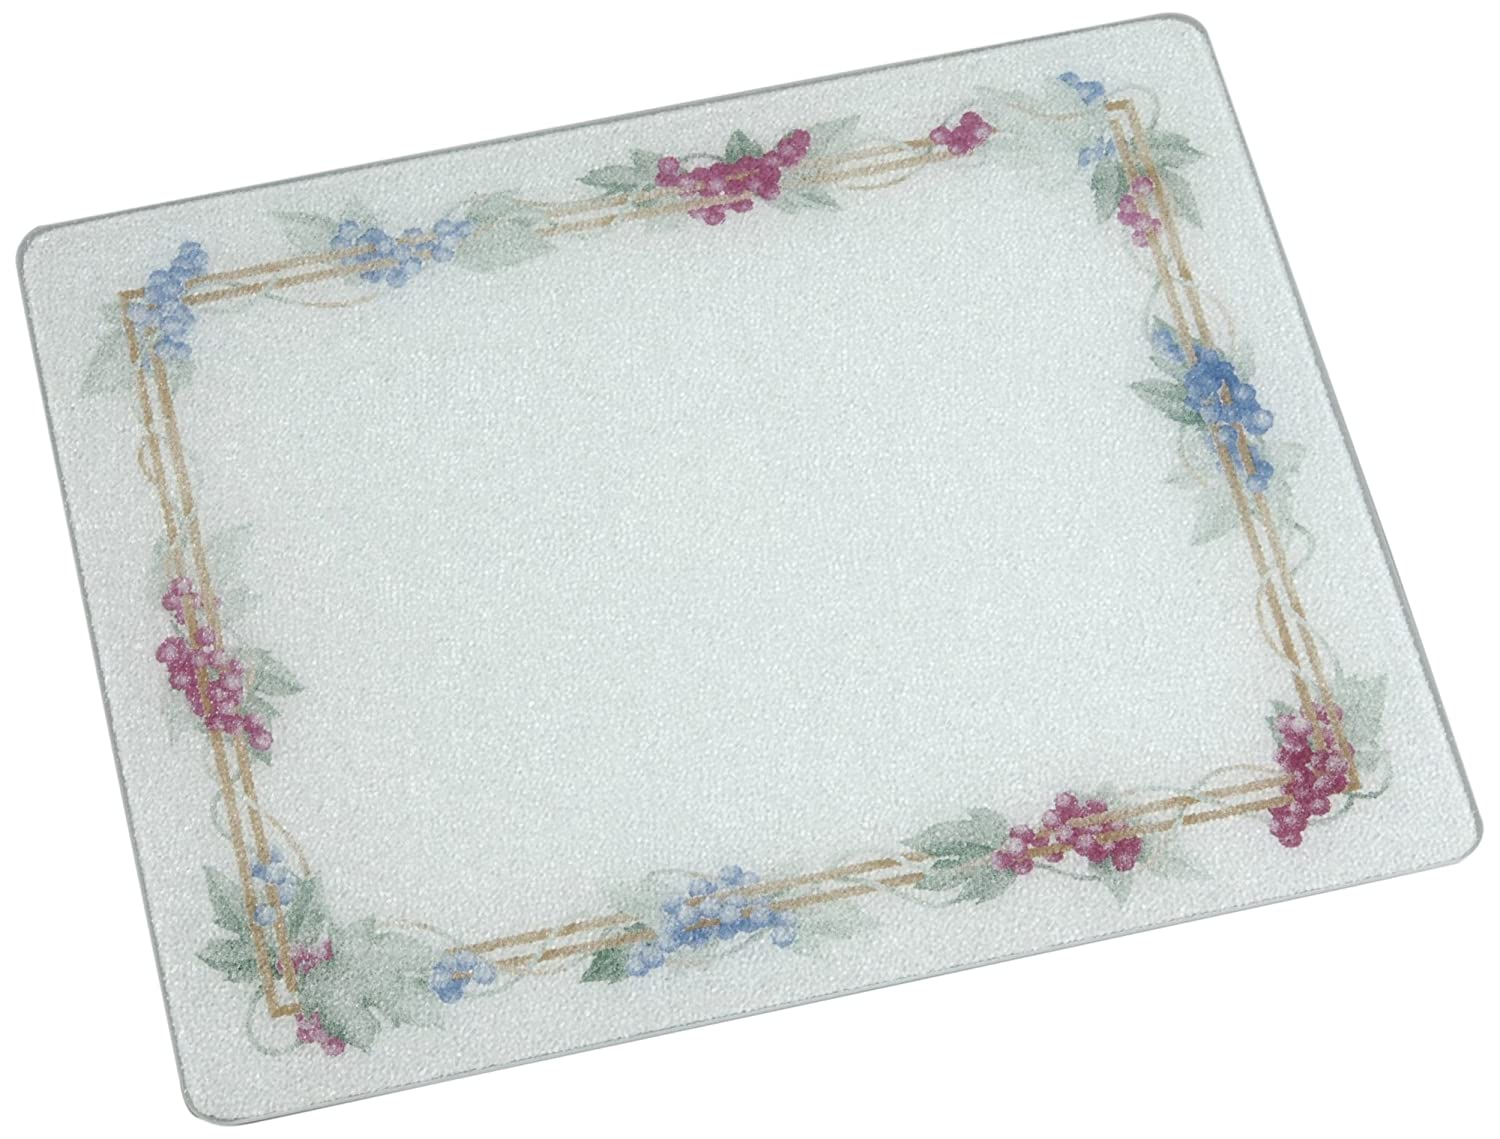 Vance 15 X 12 inch White Grapevine Surface Saver Tempered Glass Cutting Board, 81512GVW Vance Surface Saver